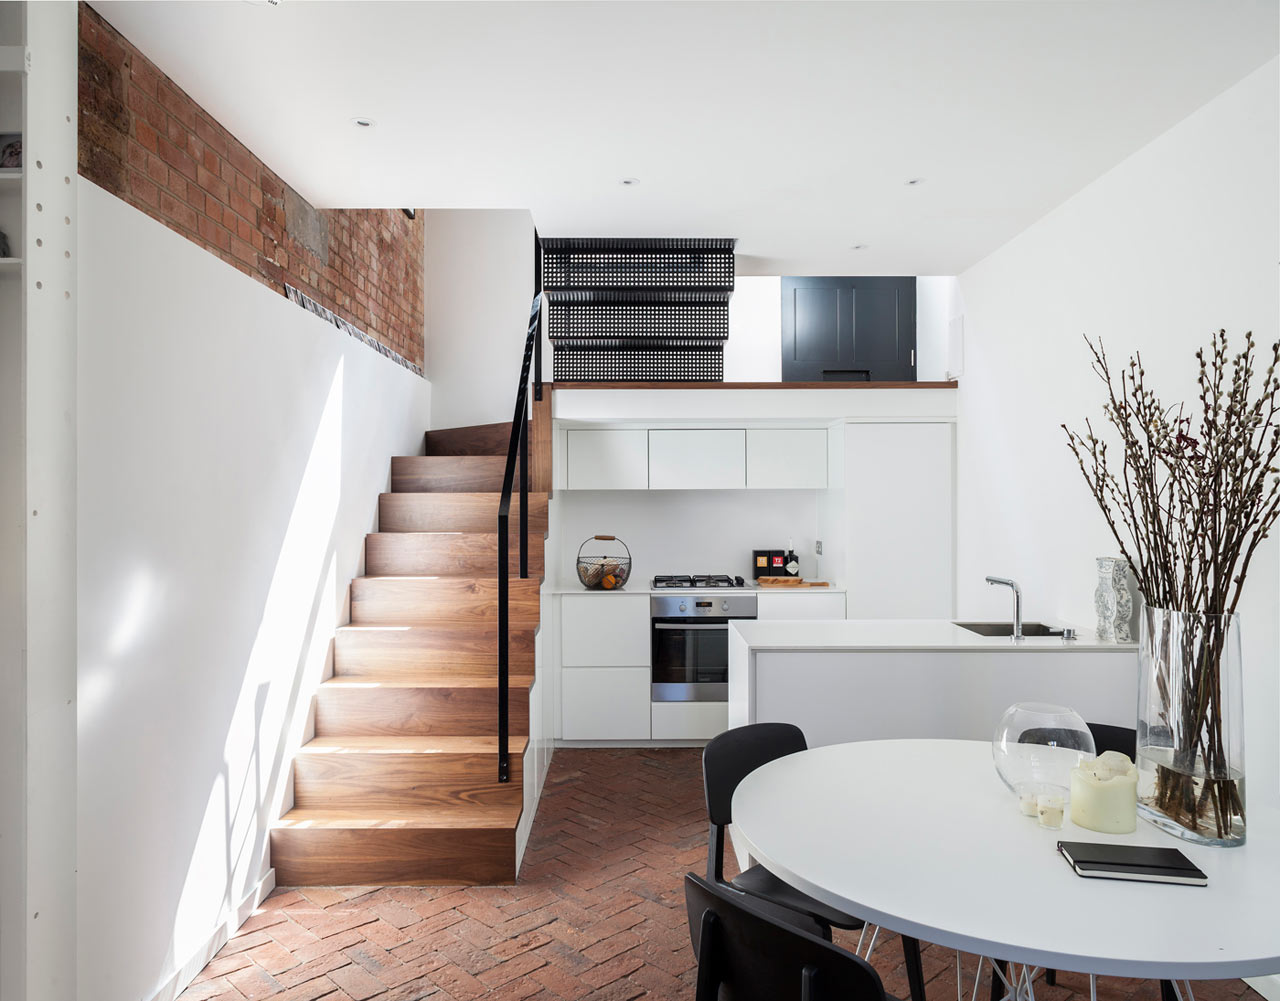 A Former Workshop Becomes a 3-Story Residence